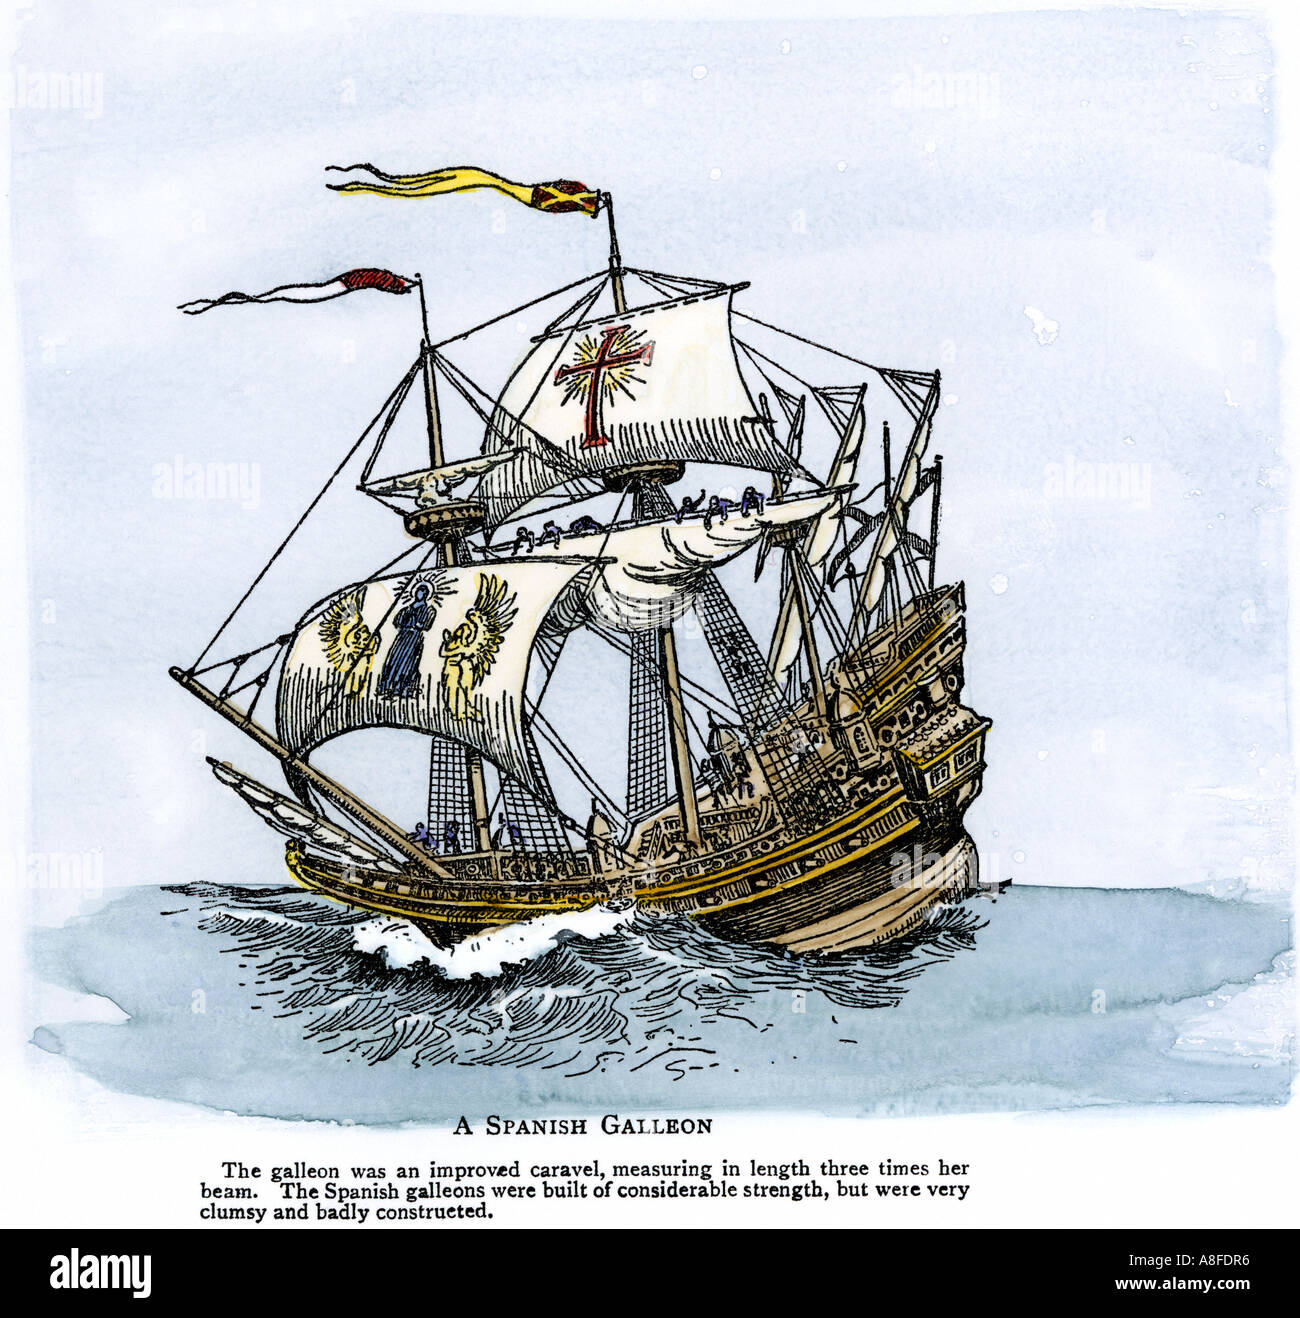 Spanish galleon an improved caravel its length three times its width spanish galleon an improved caravel its length three times its width sailed in the 1500s and 1600s publicscrutiny Choice Image